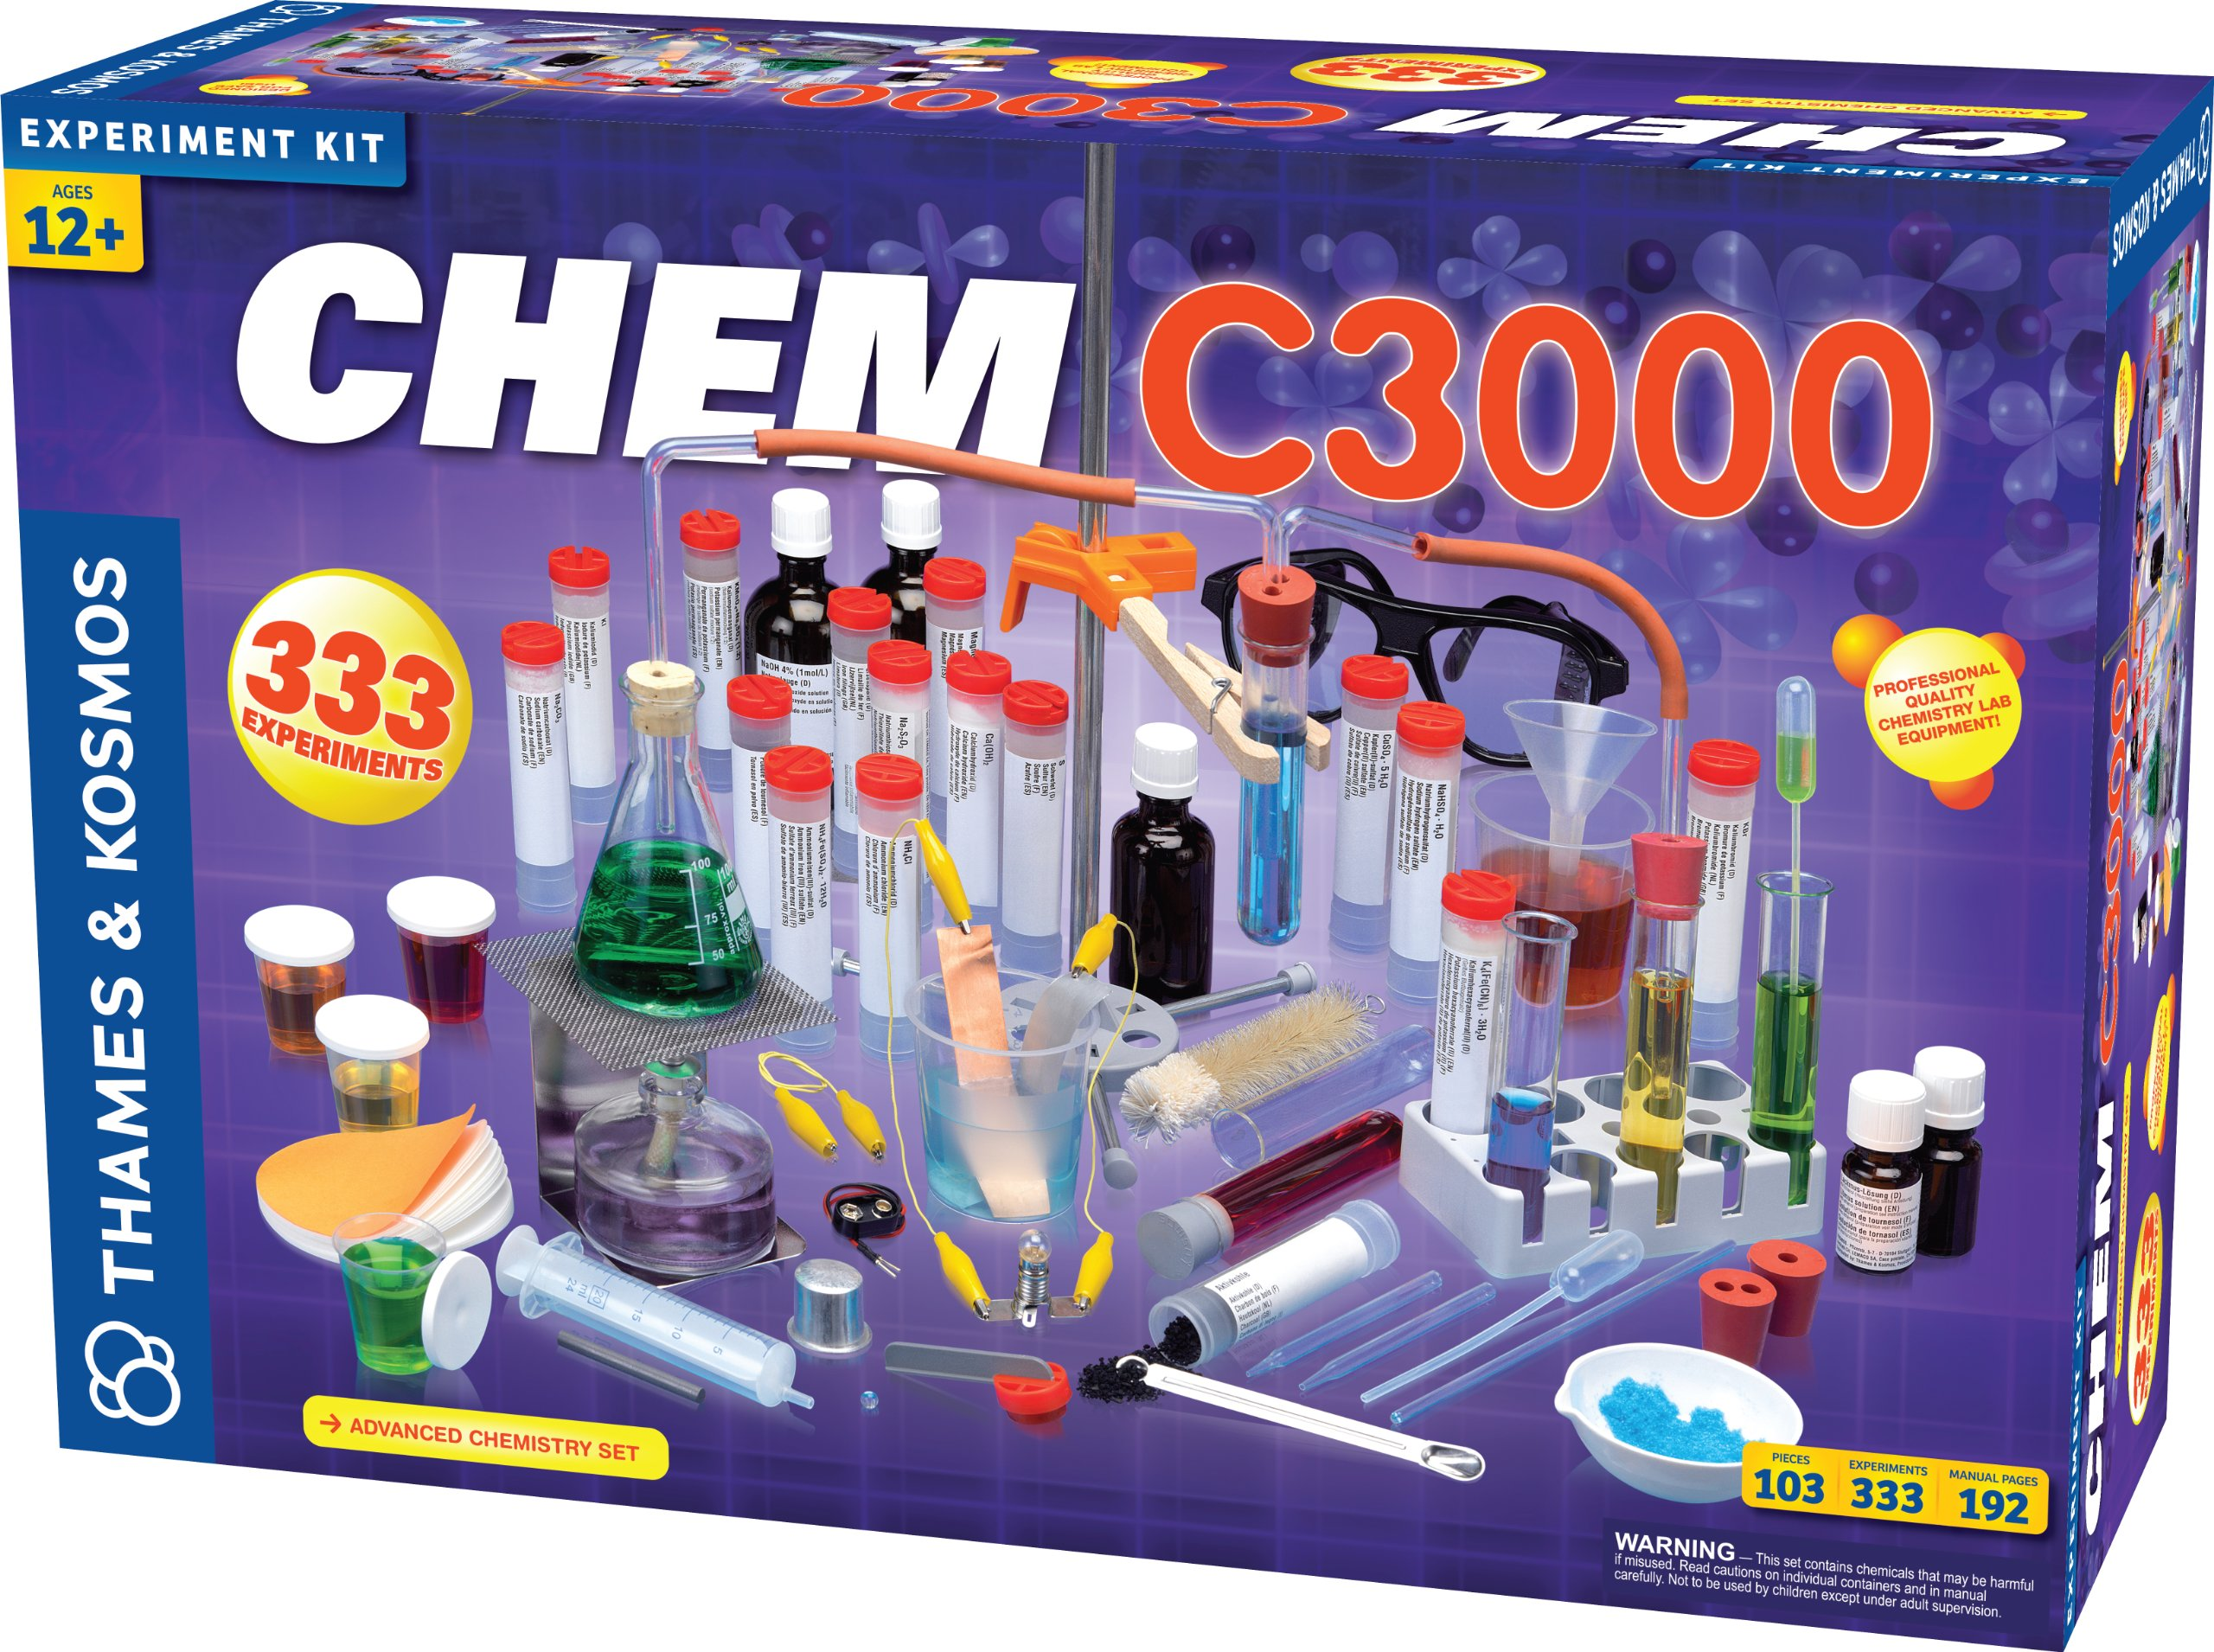 Thames & Kosmos Chem C3000 (V 2.0) Chemistry Set with 333 Experiments & 192 Page Lab Manual, Student Laboratory Quality Instruments & Chemicals by Thames & Kosmos (Image #1)